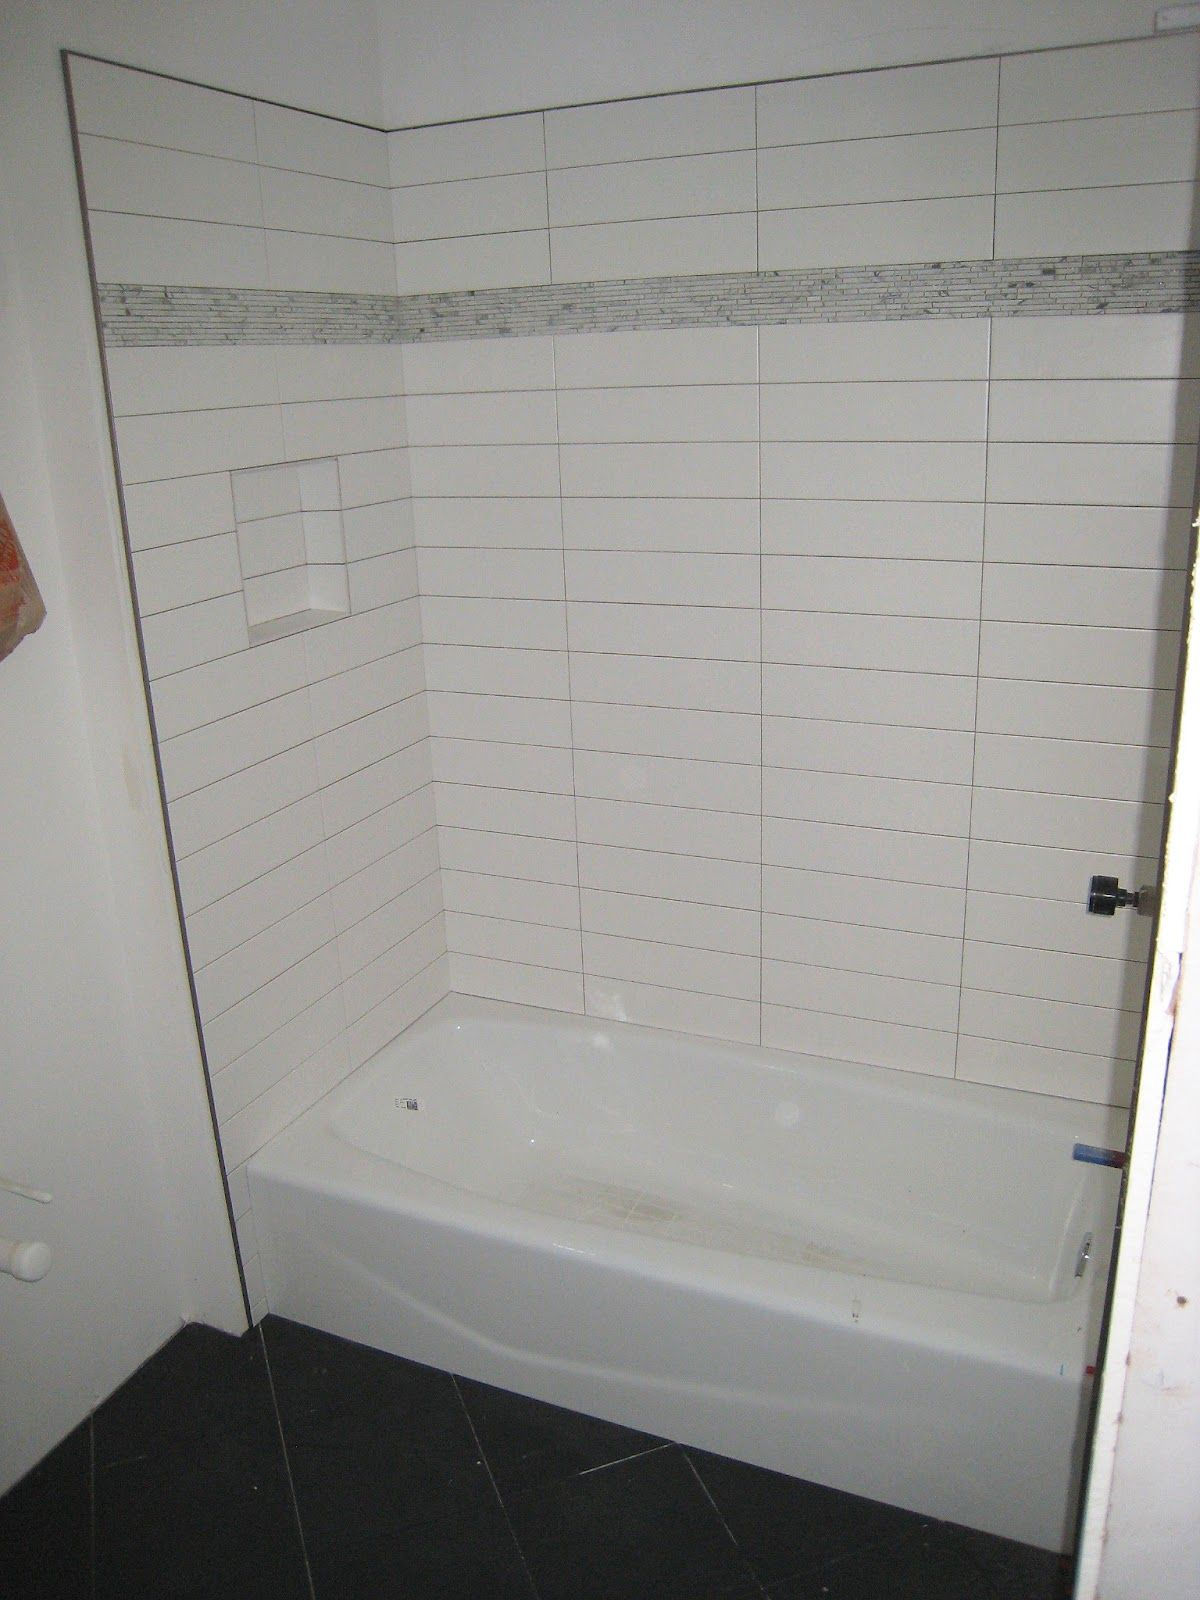 Tile layout bathrooms remodel pinterest layouts bath and bathroom designs also